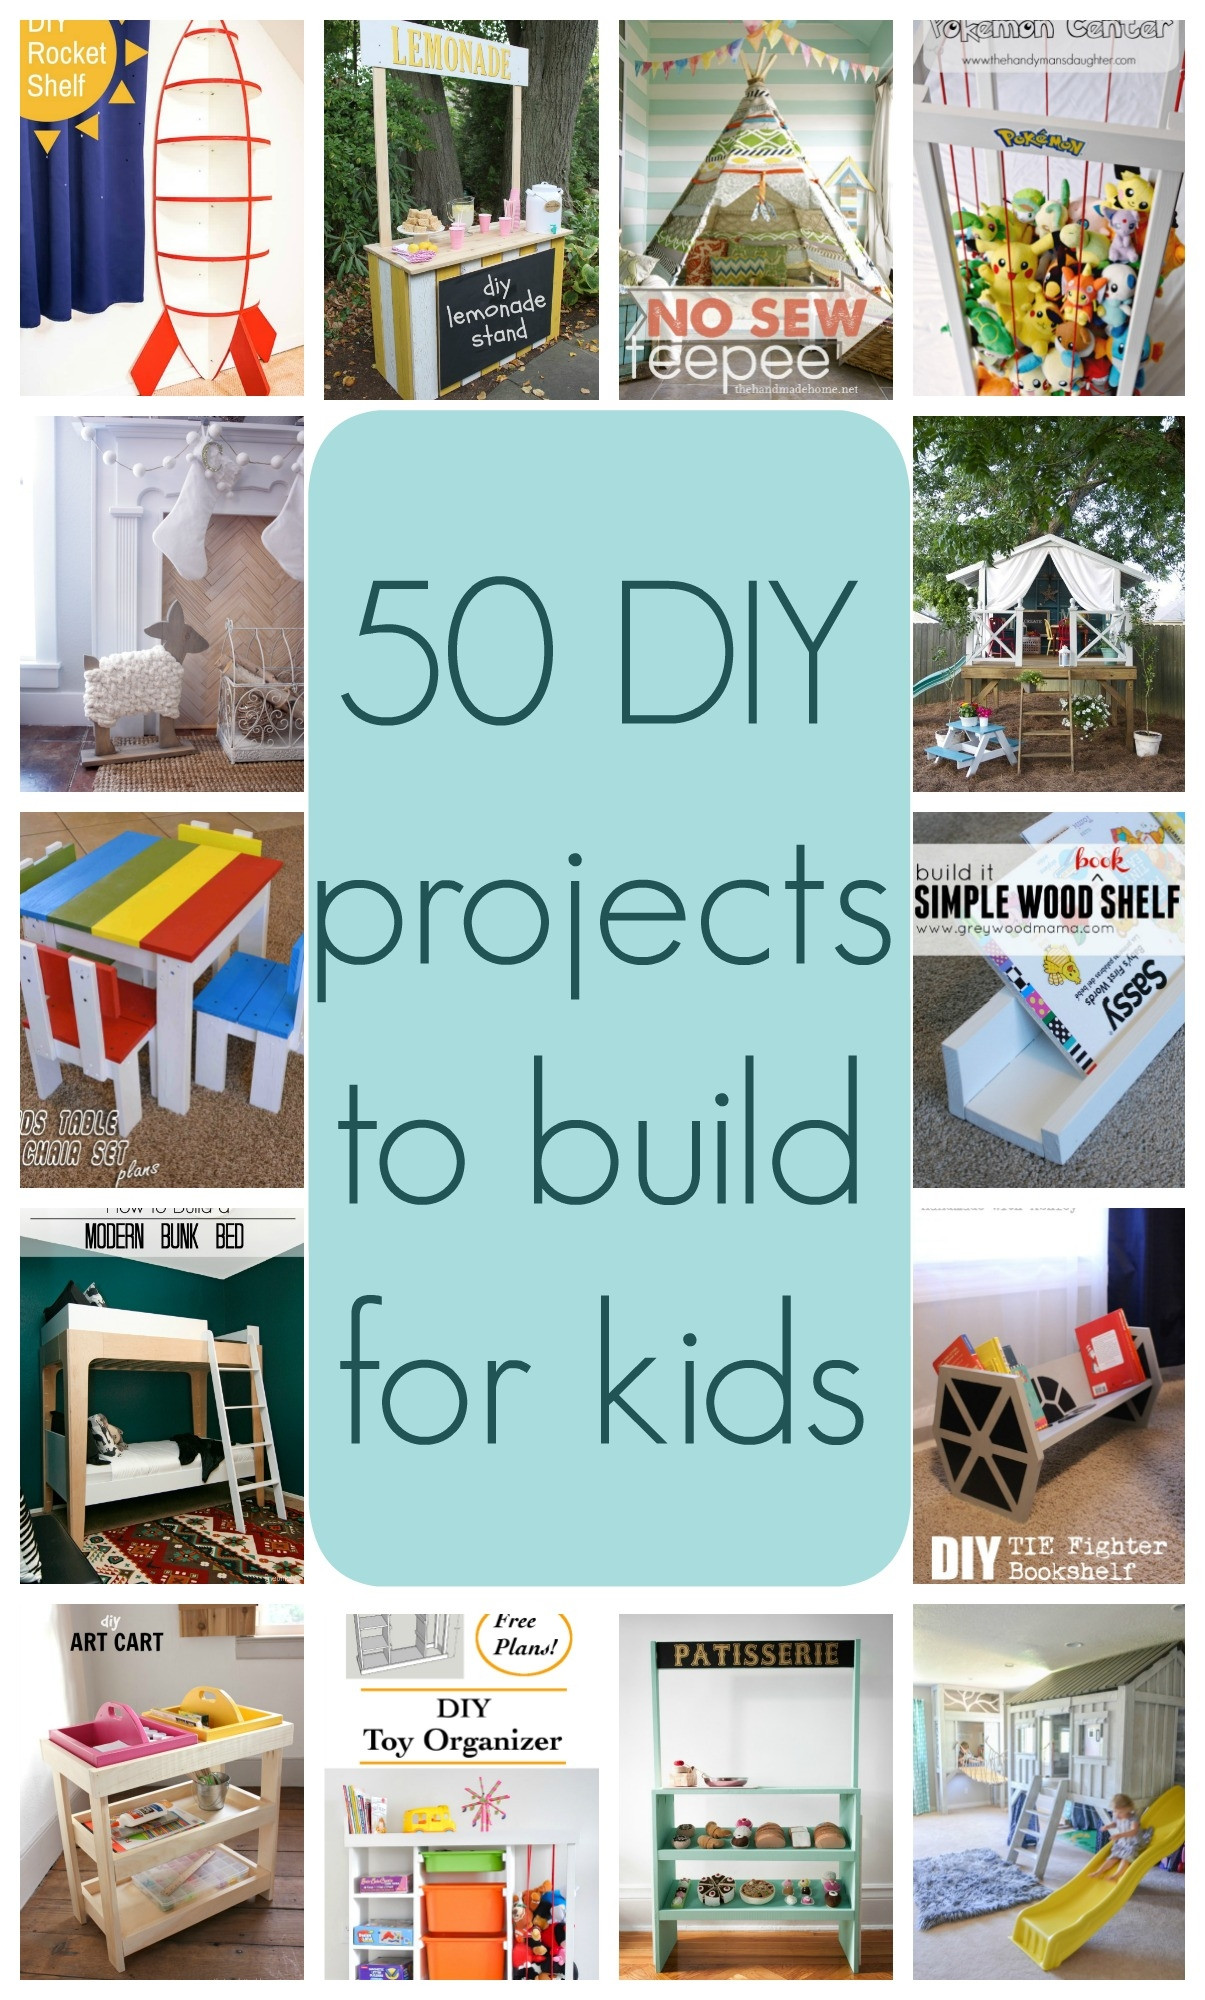 DIY Projects For Kids  50 DIY projects to build for kids Part 1 The Created Home